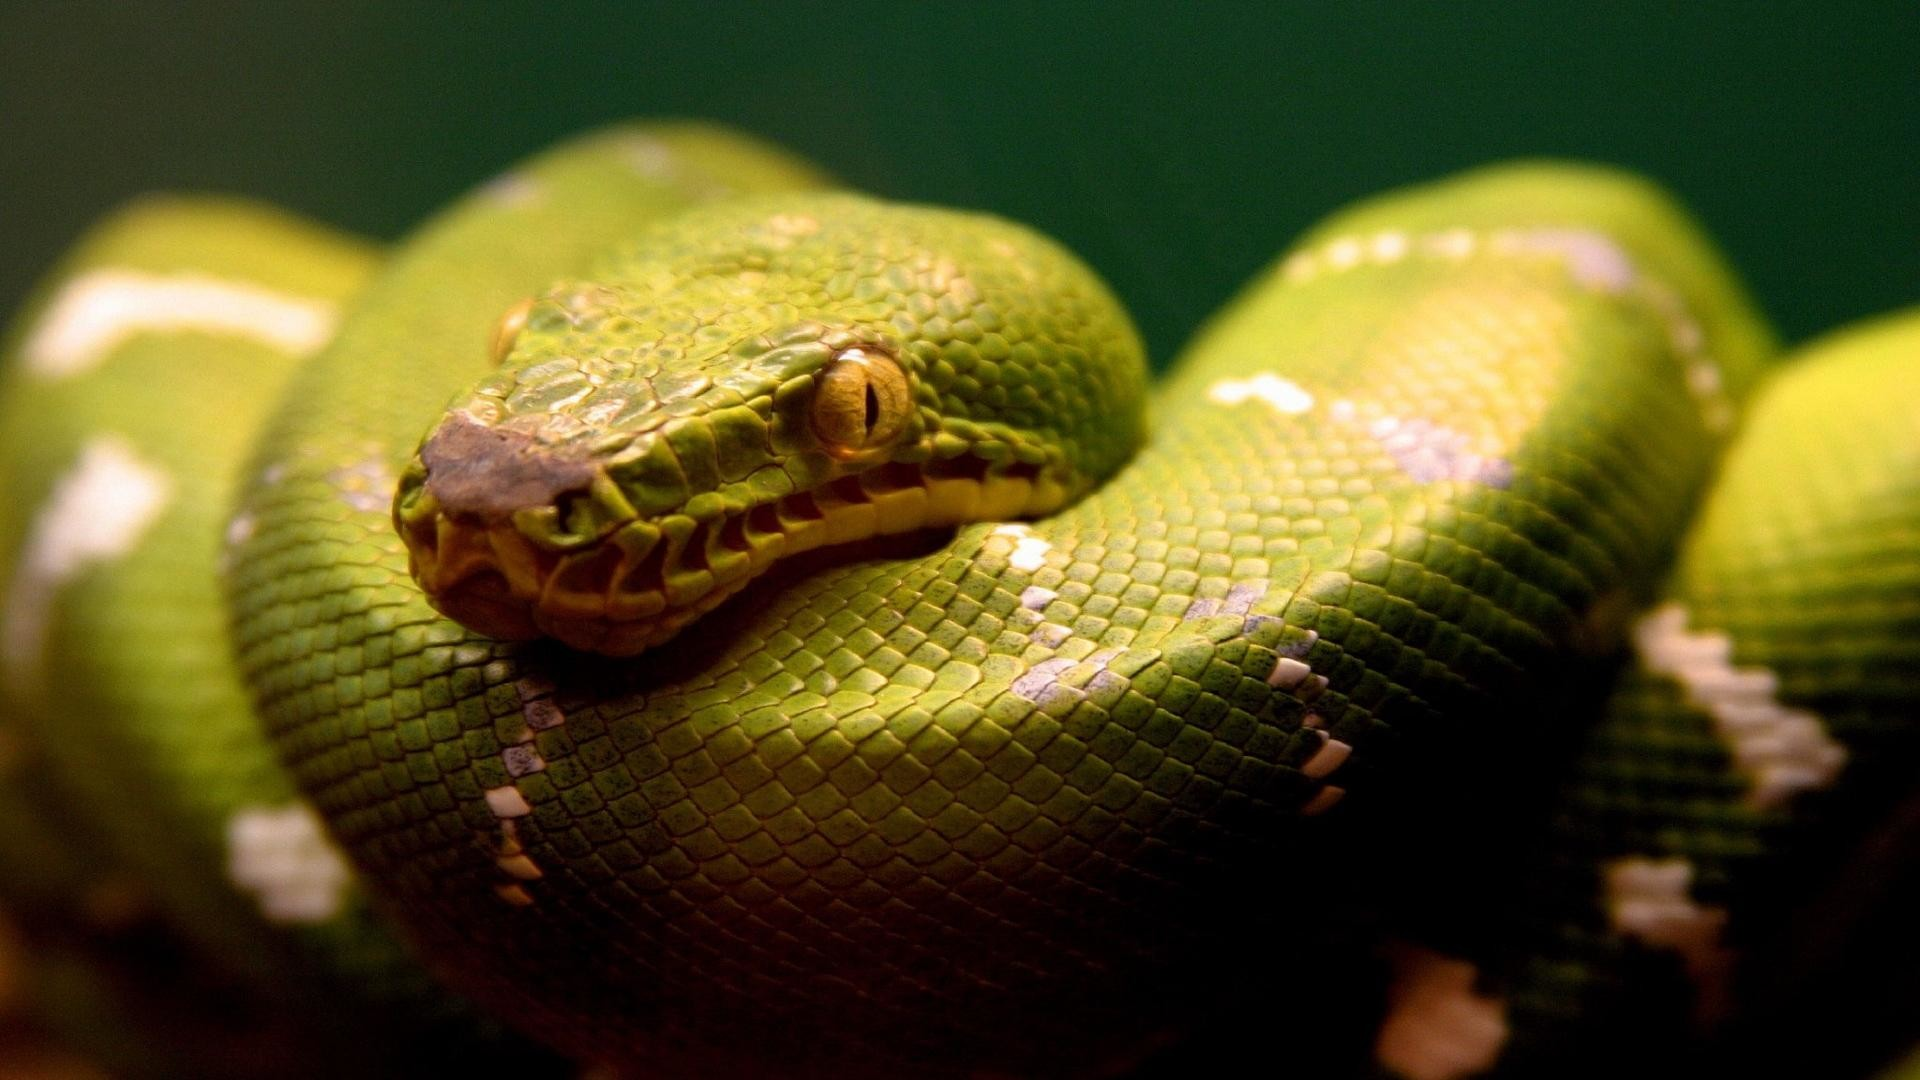 Green anaconda snake eating